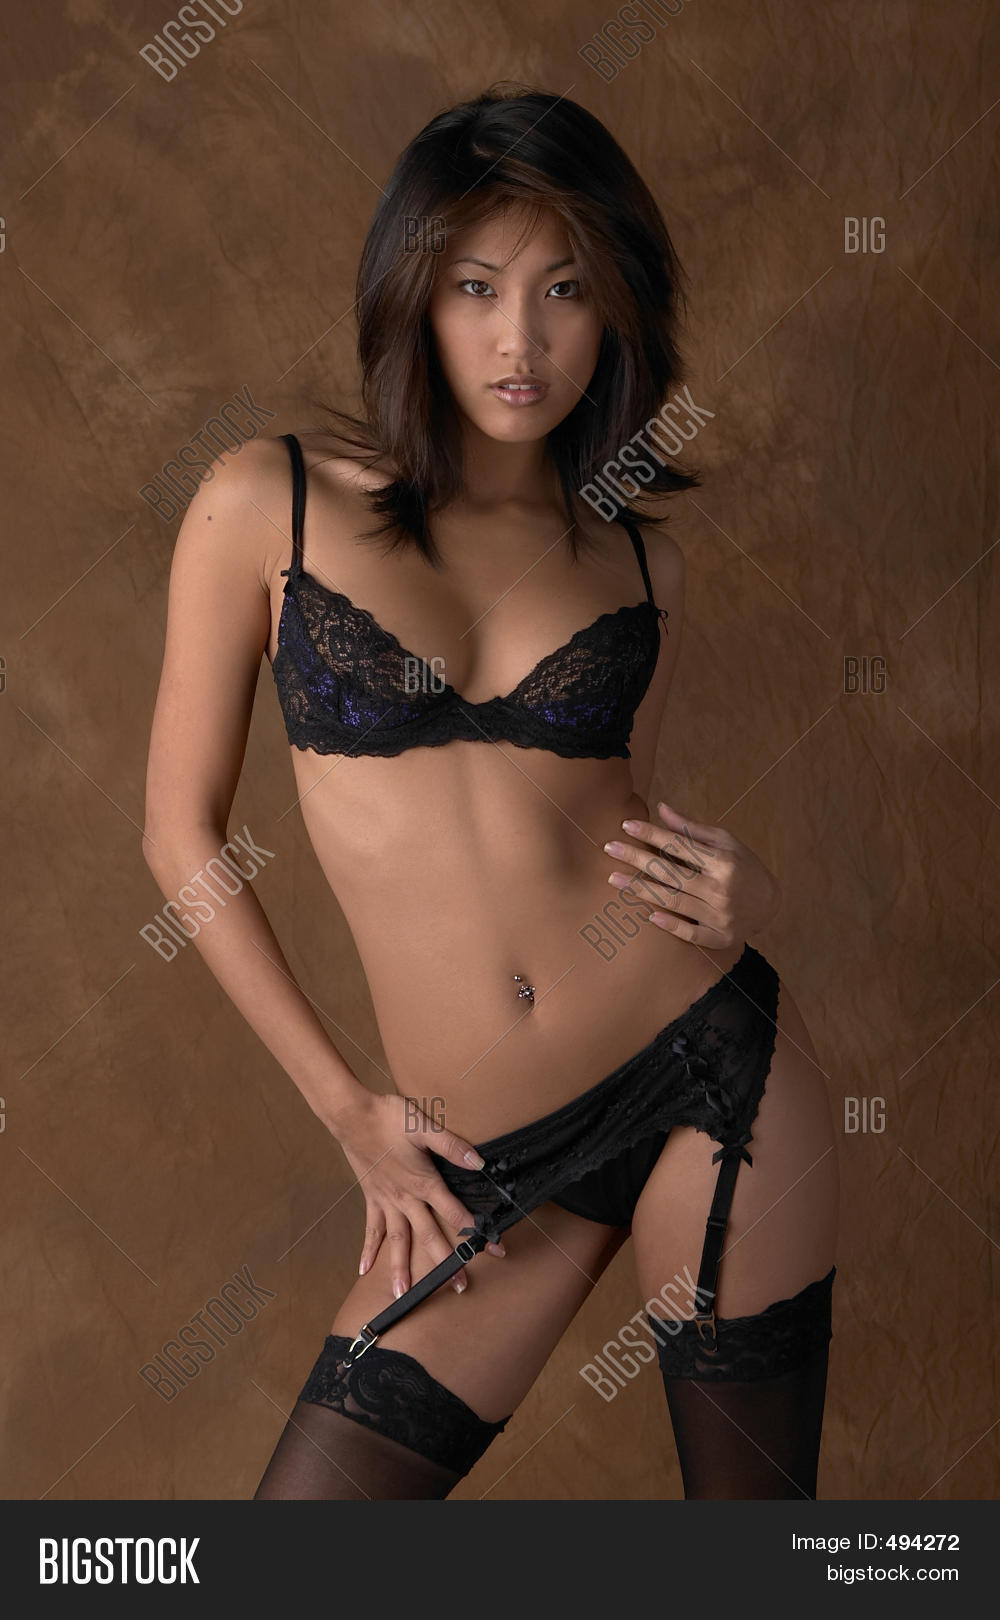 woman black lingerie image & photo | bigstock